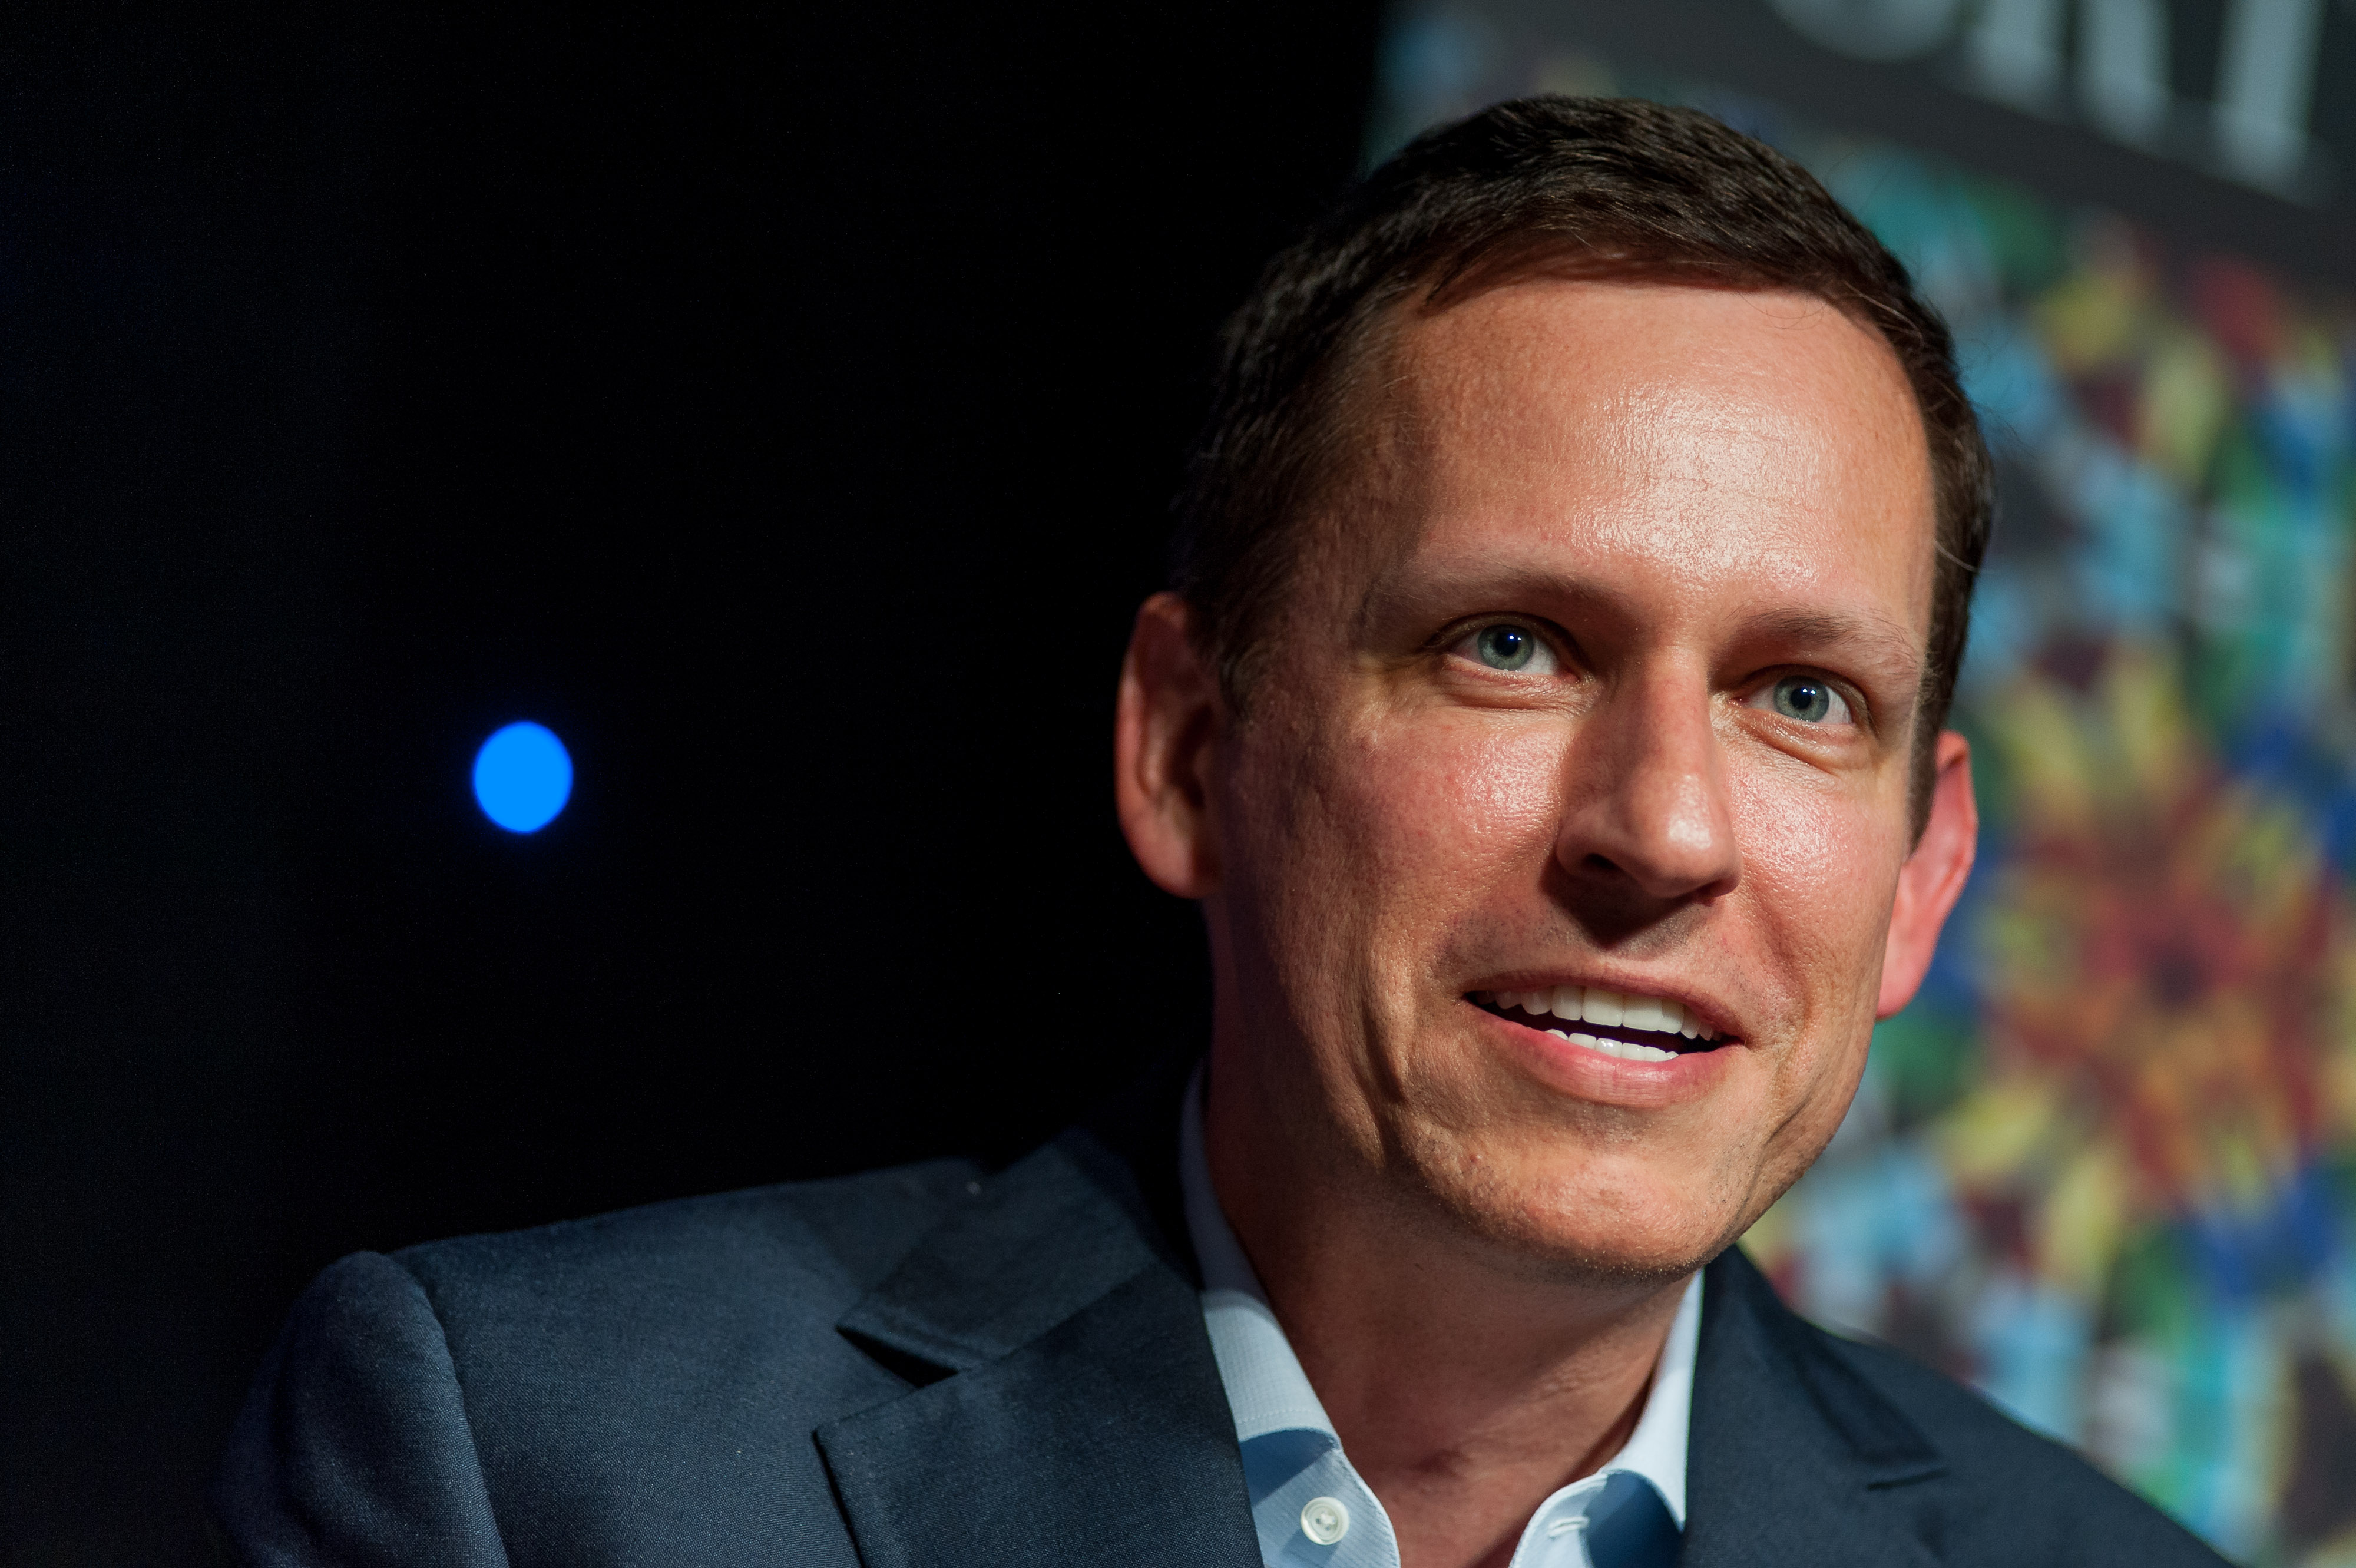 techcrunch.com - Connie Loizos - Peter Thiel's argument that Silicon Valley has been 'brainwashed' by higher education is tired